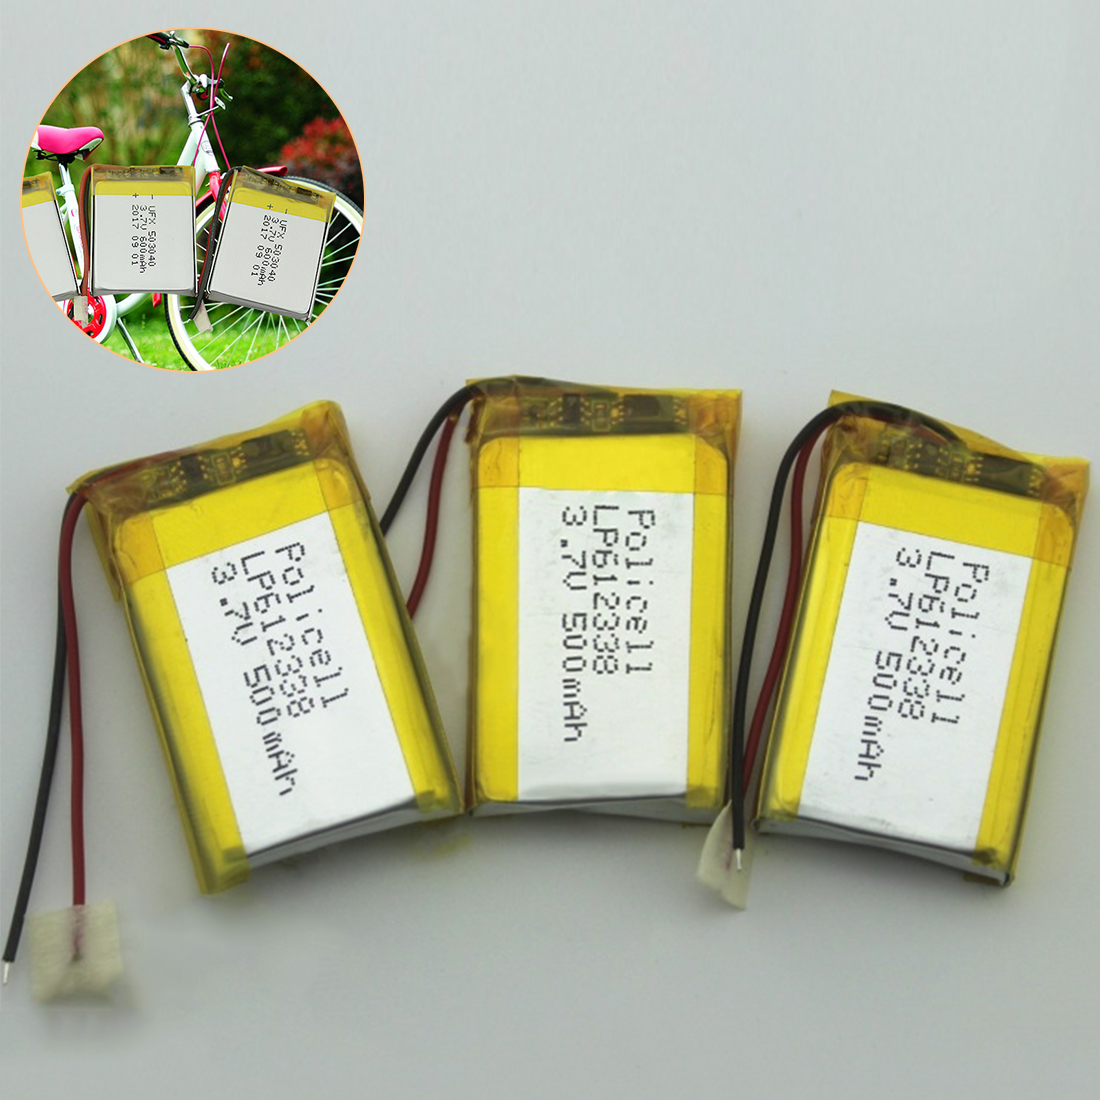 Rechargeable 3.7V 500mAh <font><b>612338</b></font> Lithium Polymer Li-Po Li ion Battery Lipo Cells for DVR GPS MP3 MP4 Cell Phone Speaker image